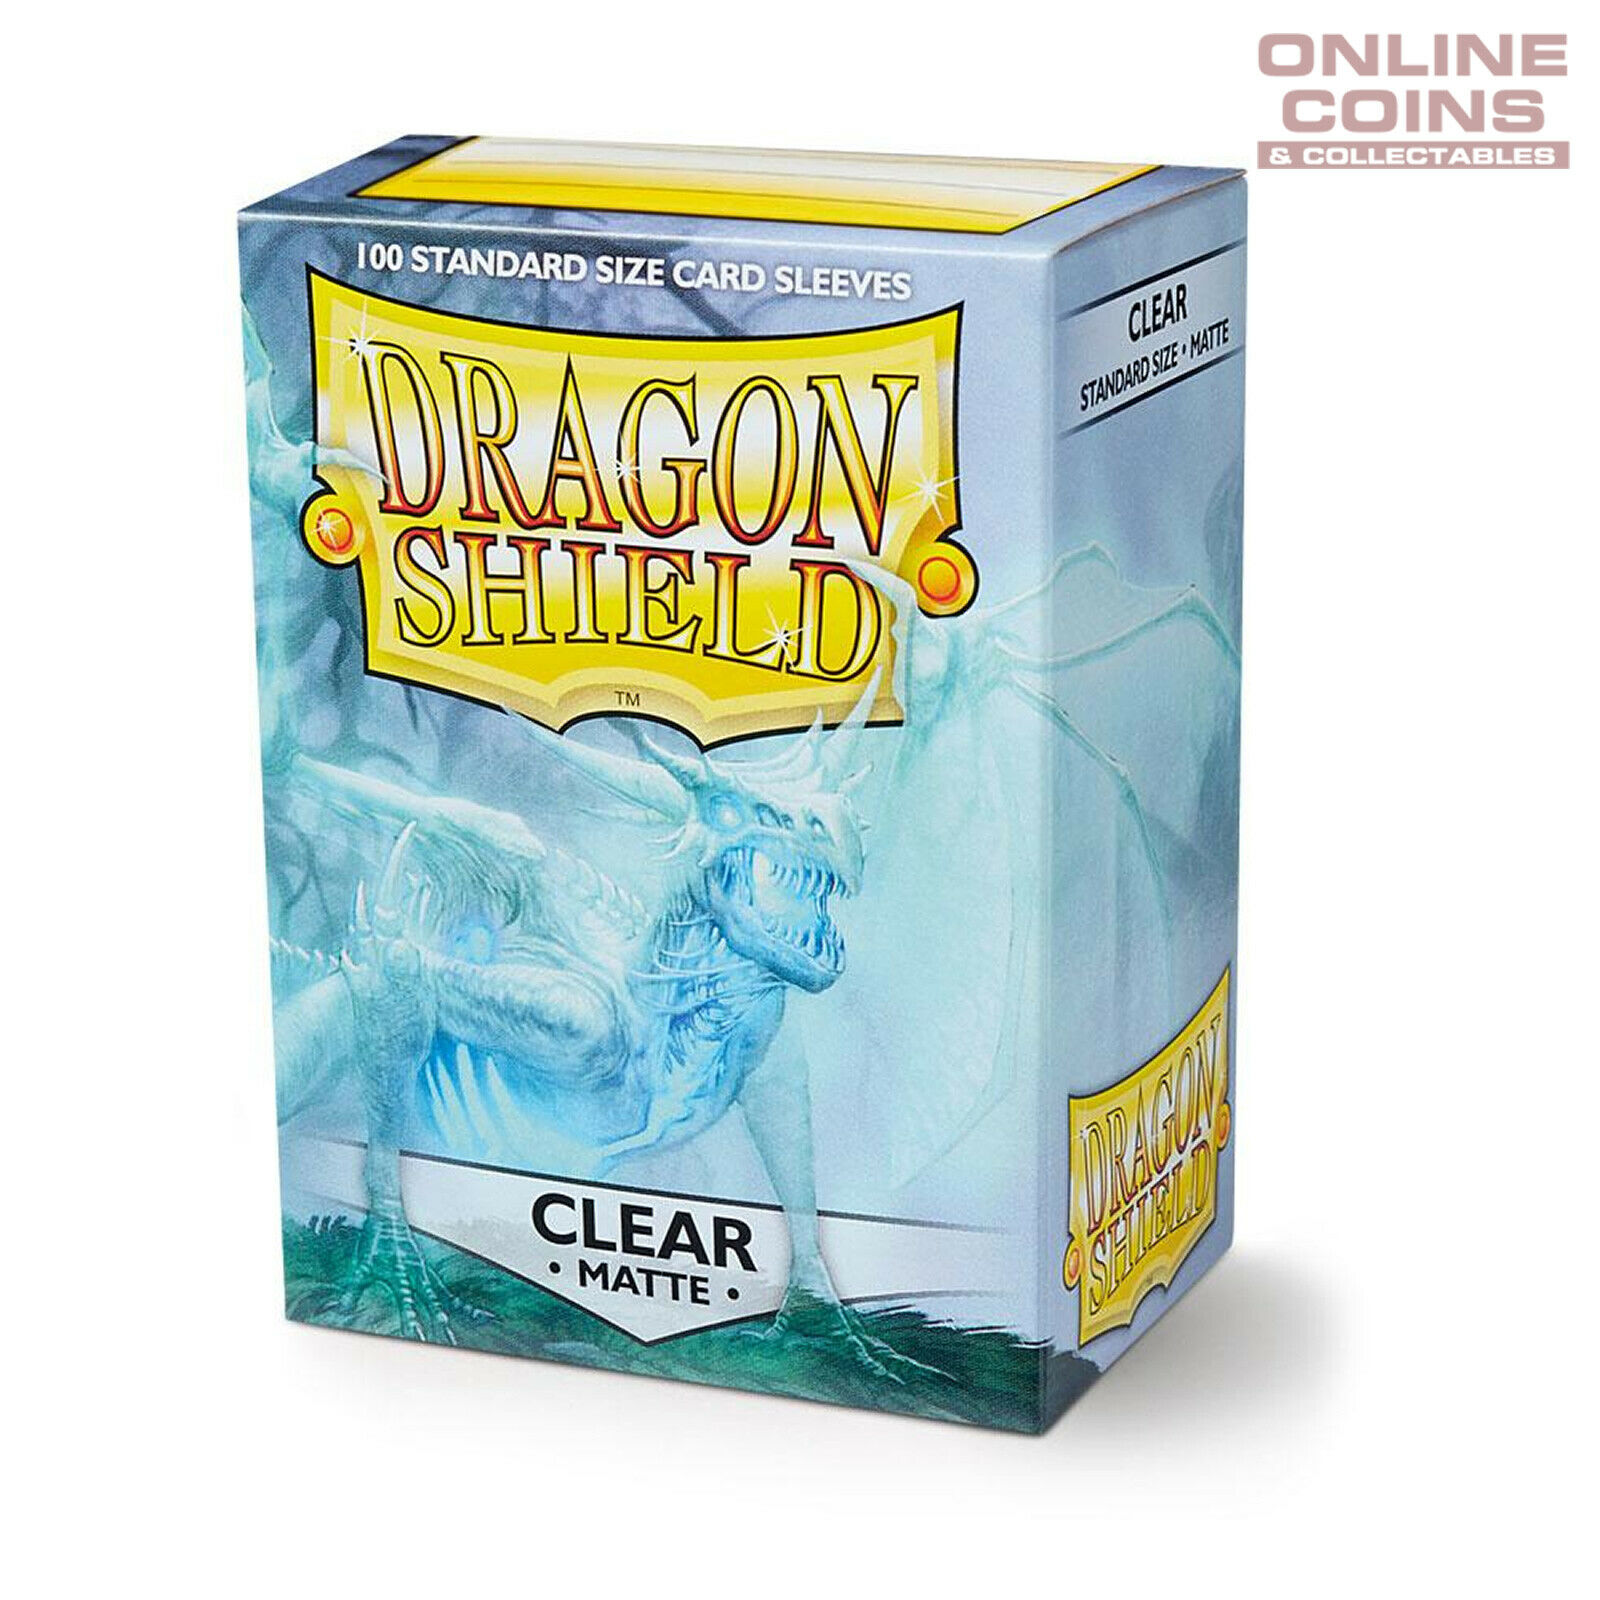 100 Count Clear Inner Card Sleeves Matte Clear 100 Count Standard Size Deck Protector Sleeves Dragon Shield Bundle